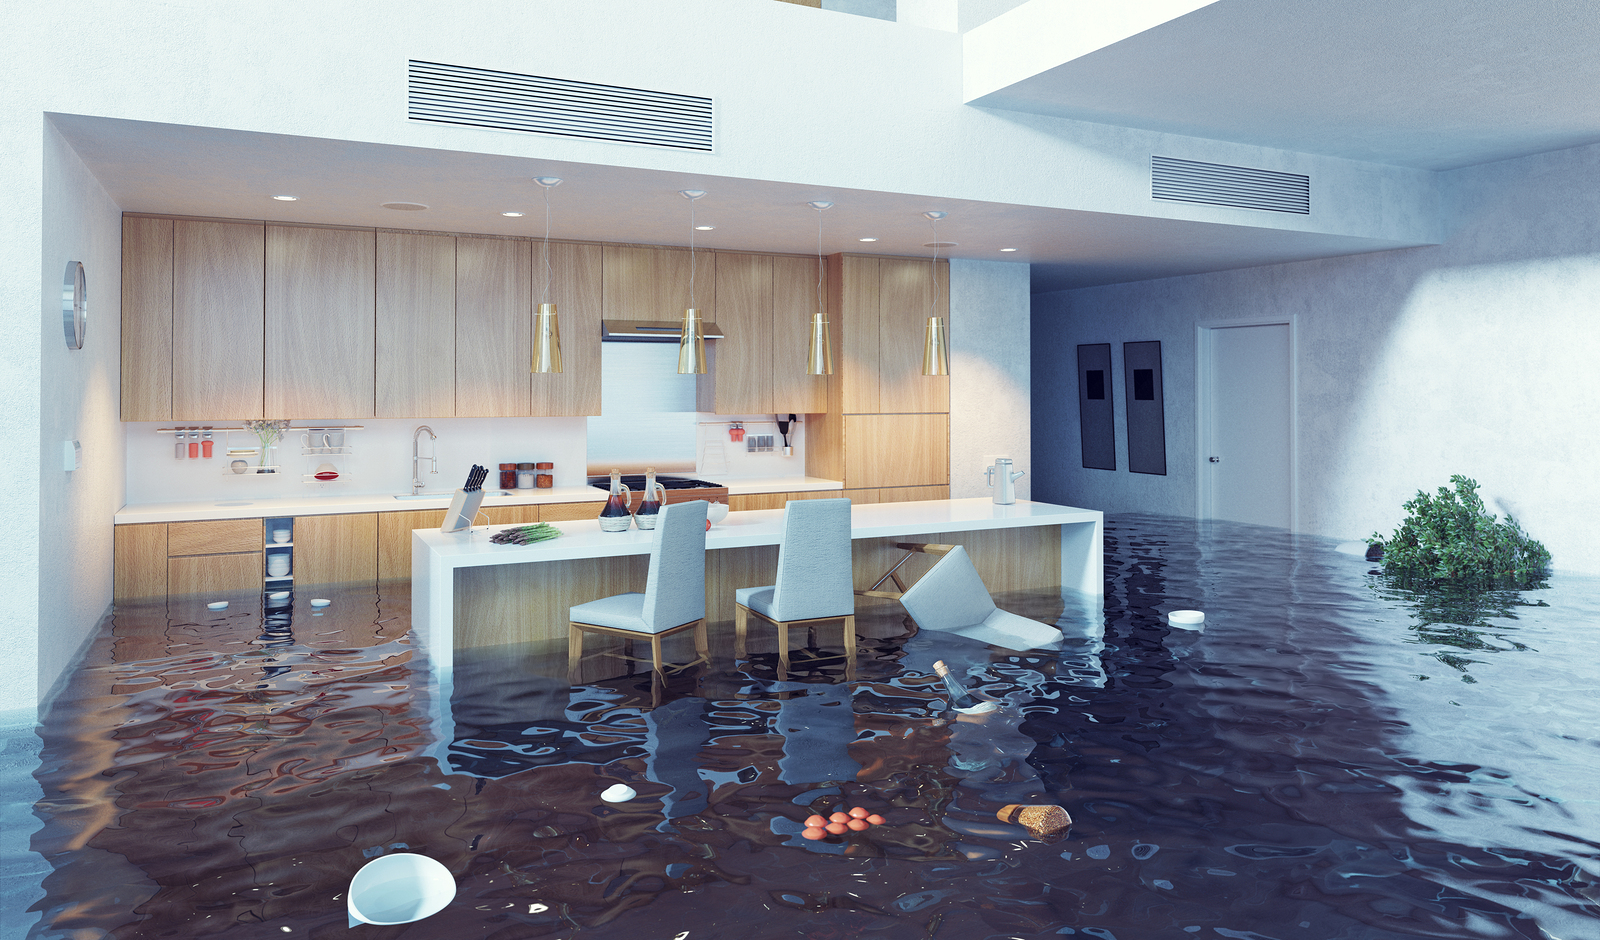 flooded luxury kitchen as a warning to work with experts for buying a home sight unseen